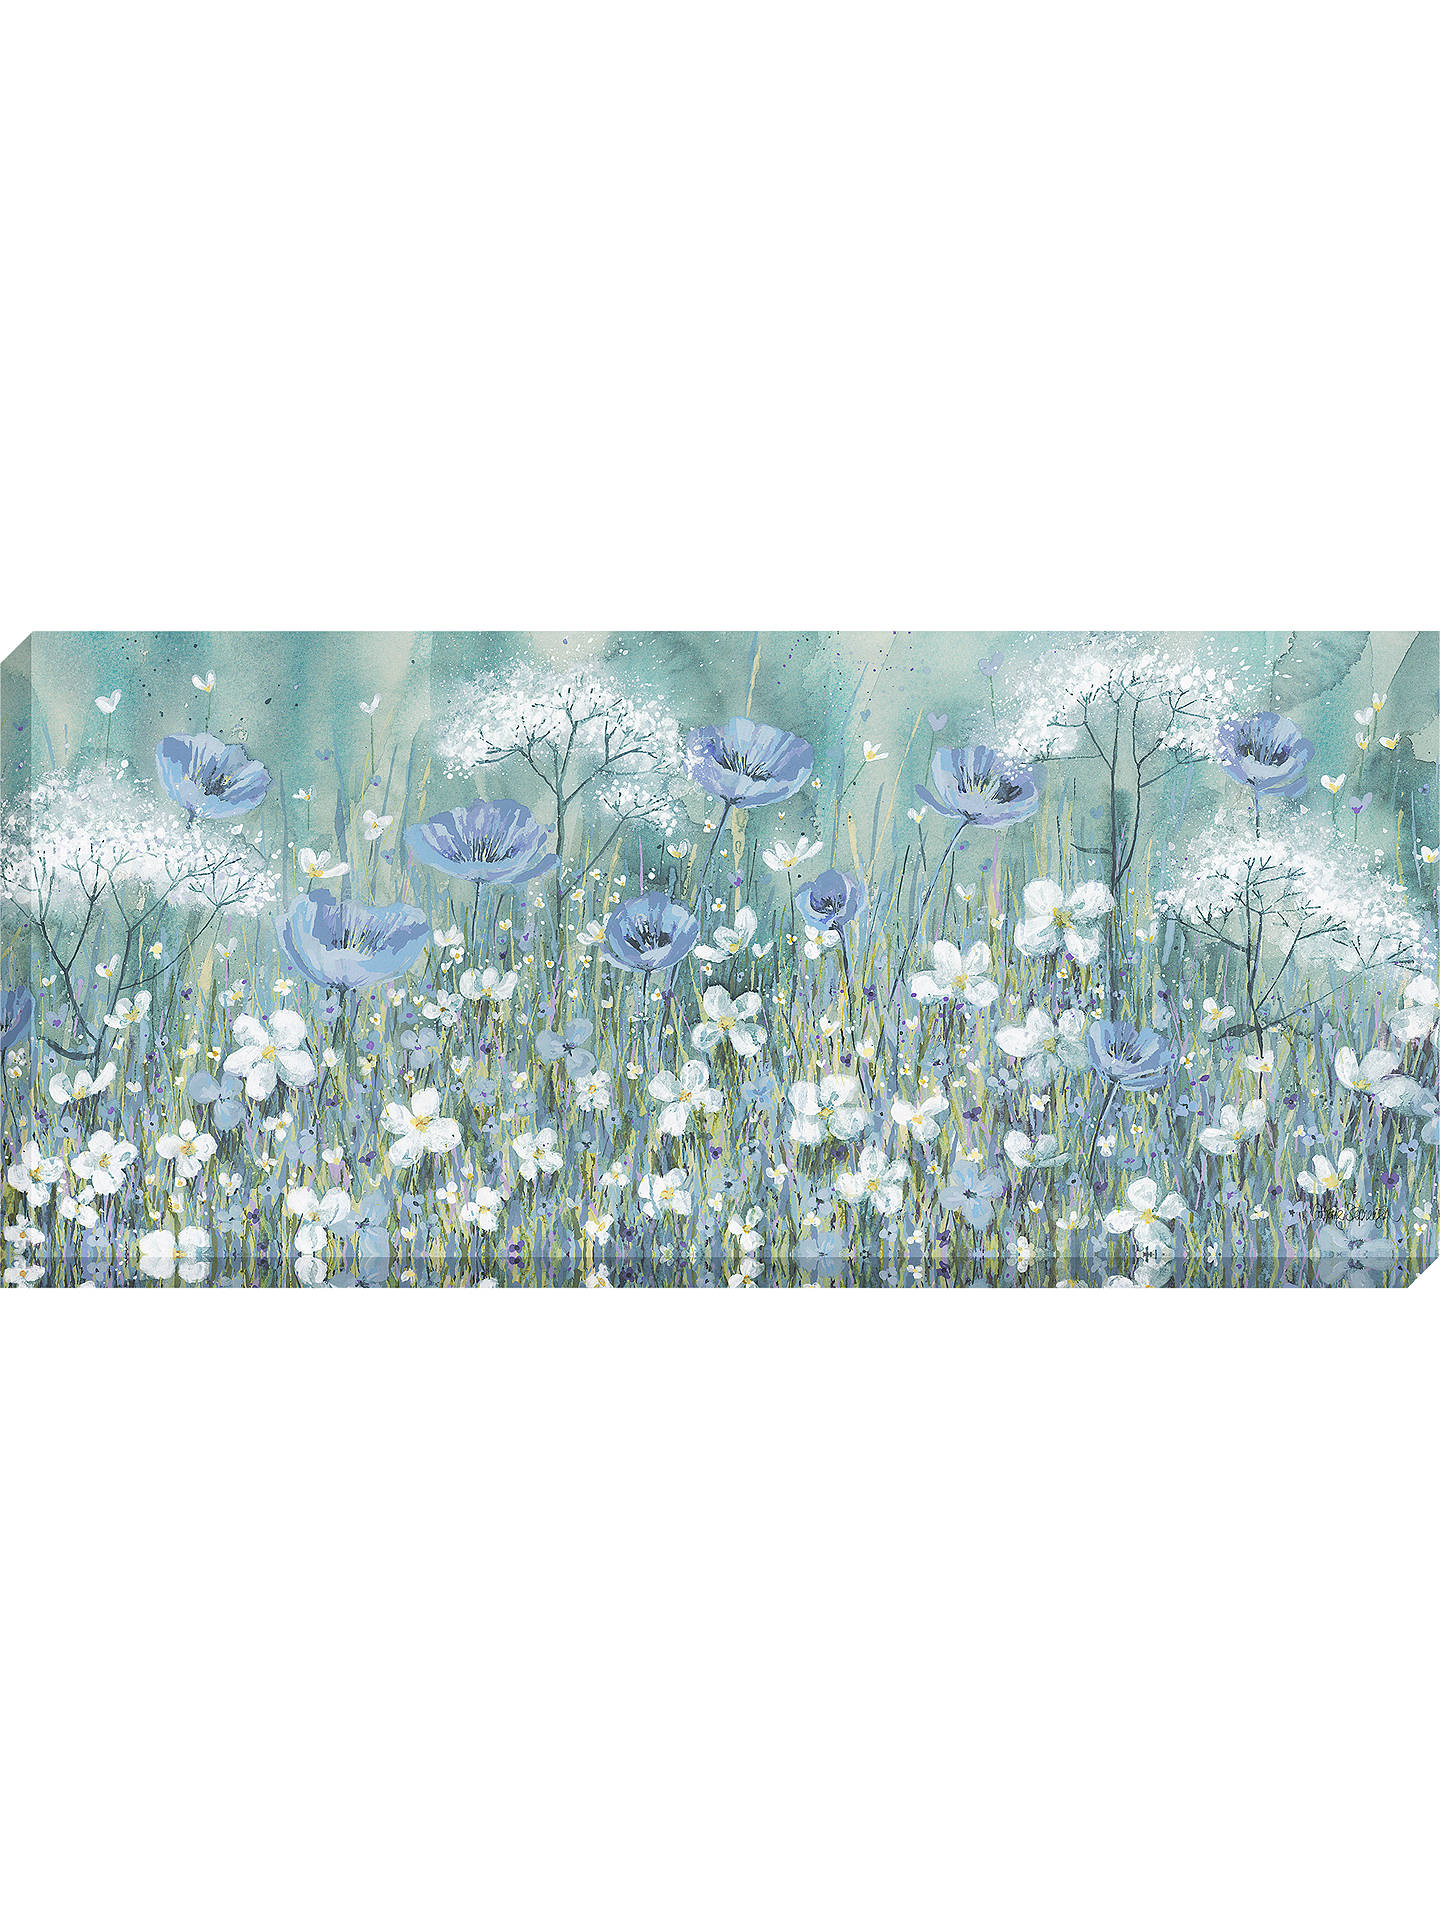 BuyCatherine Stephenson - Lavender Daisy Meadow Canvas Print, 135 x 60cm Online at johnlewis.com